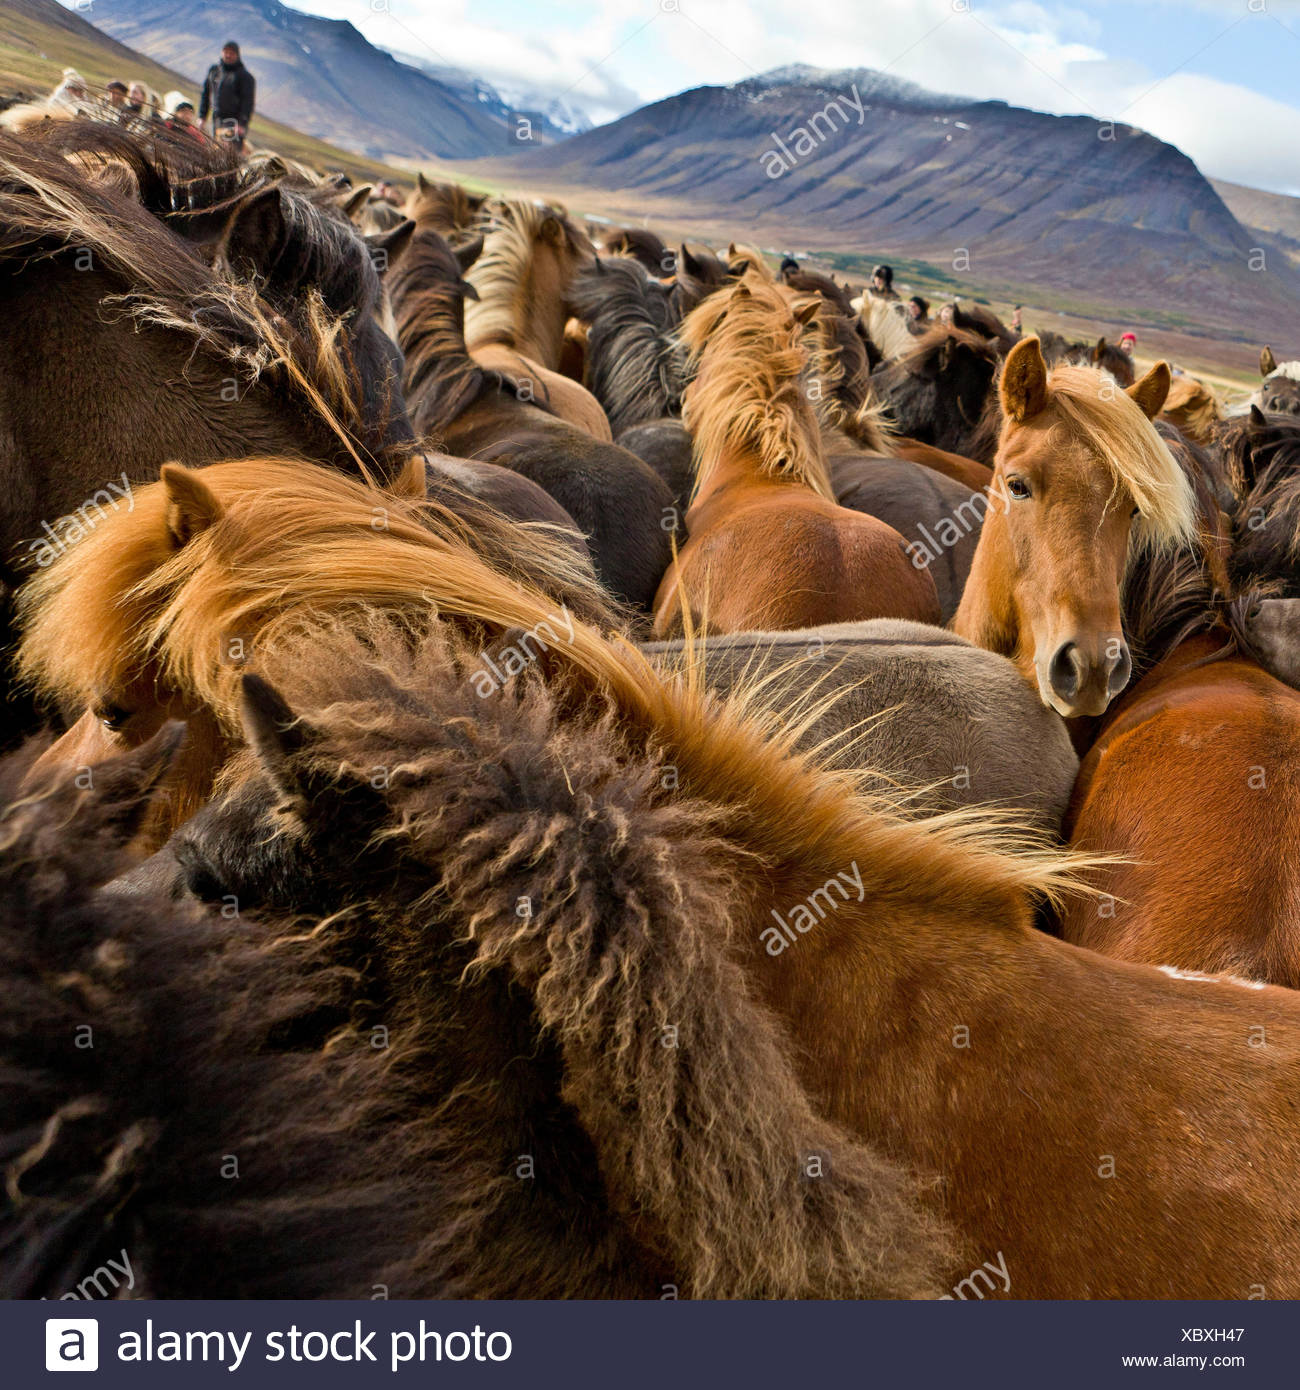 Annual Horse Round Up-Laufskalarett, Skagafjordur, Iceland Farmers keep up a long tradition of letting their horses roam around freely in the commons during the summer, Every autumn horses are rounded up and sorted, Stock Photo